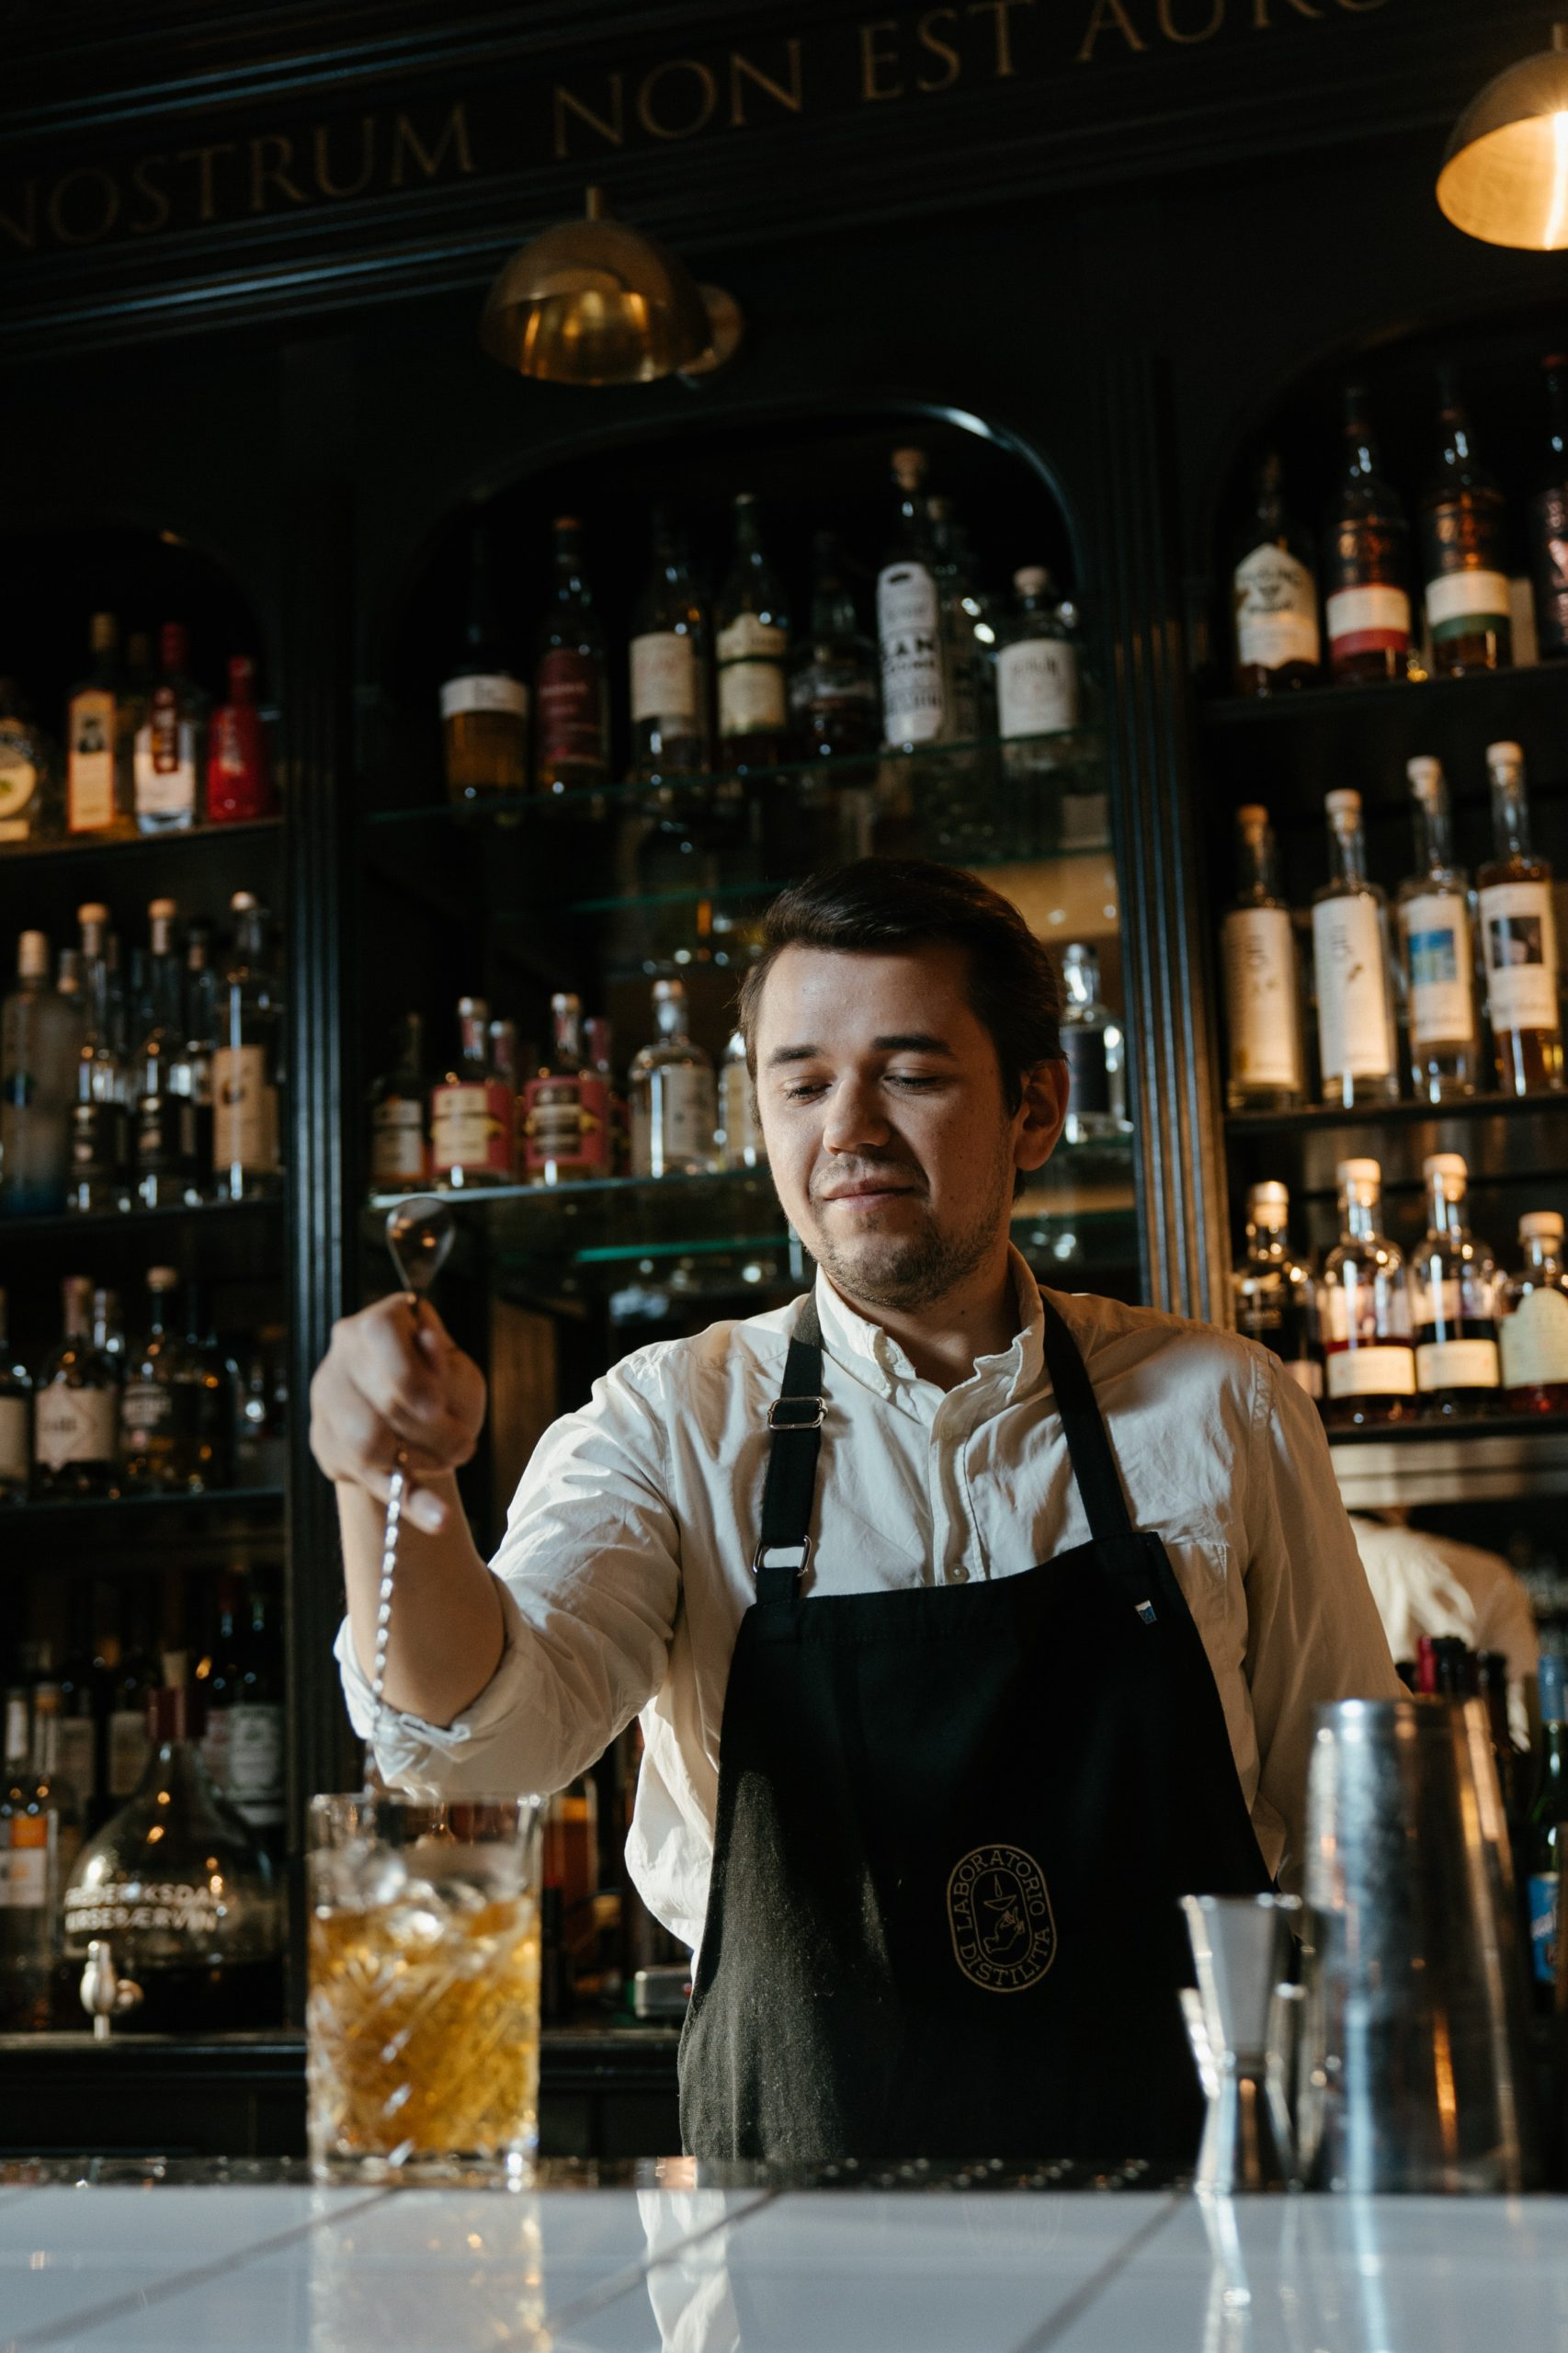 male bartender mixing a drink in a bar with a stir spoon